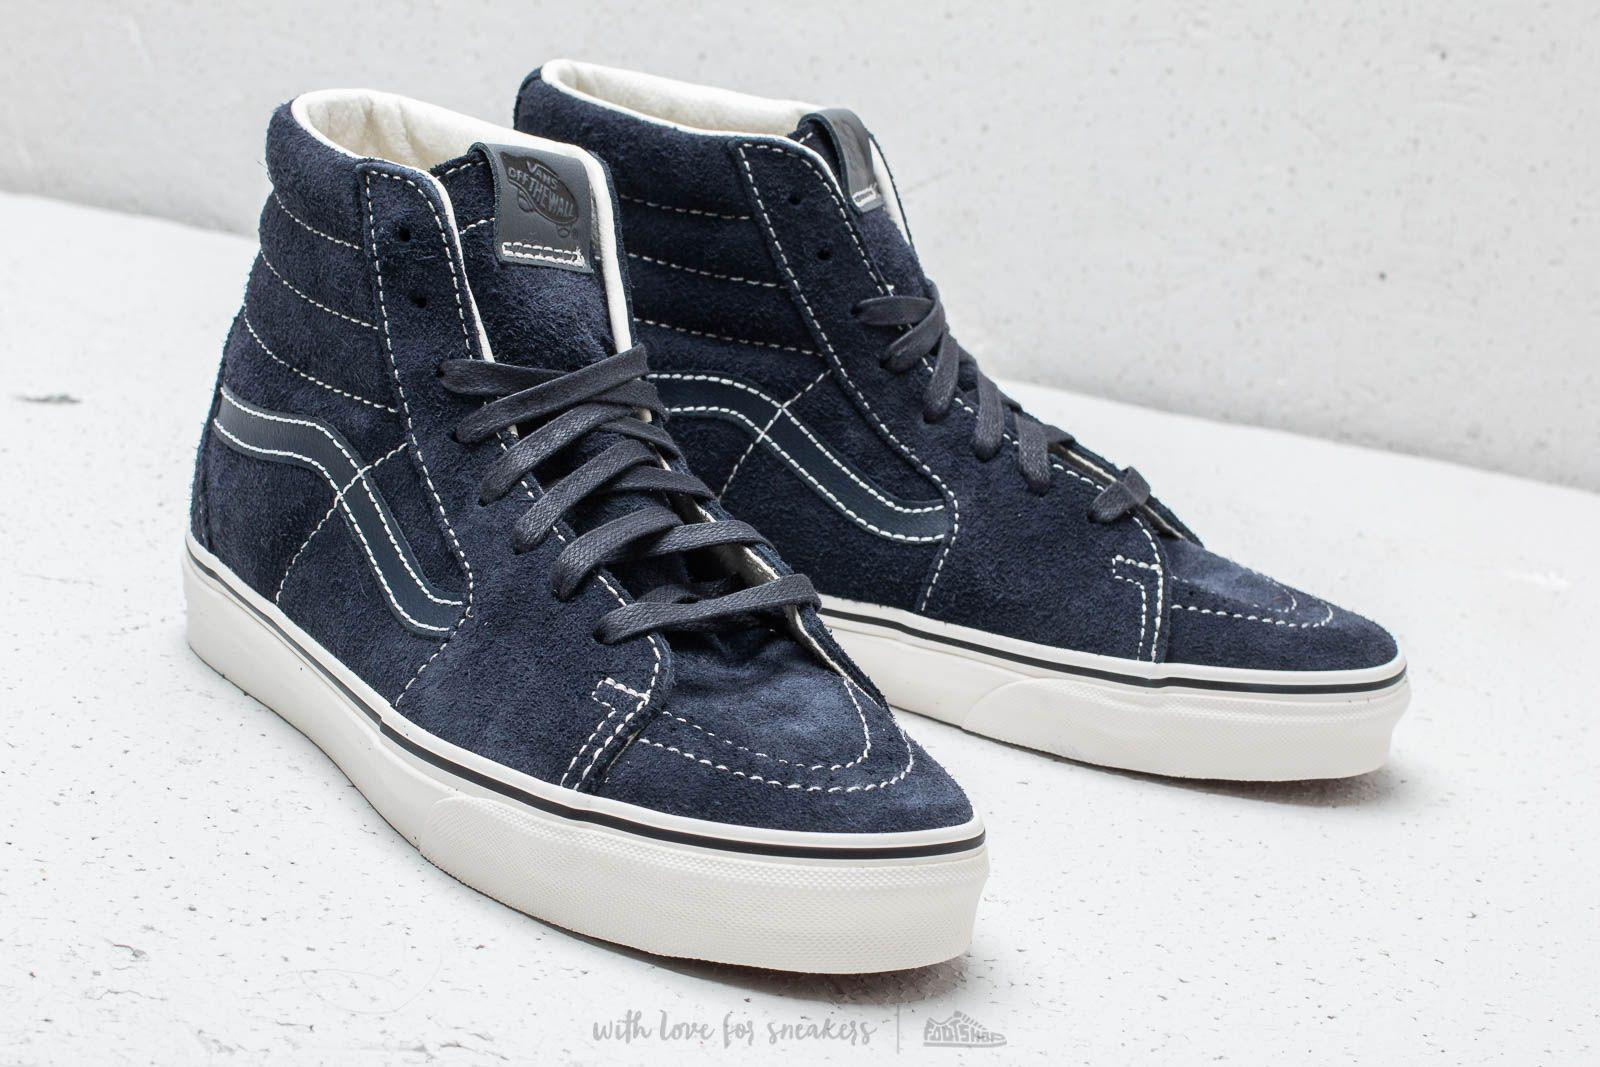 Lyst vans hi hairy suede captain snow white in blue for men jpg 1600x1067 Sky  high afed29c1b